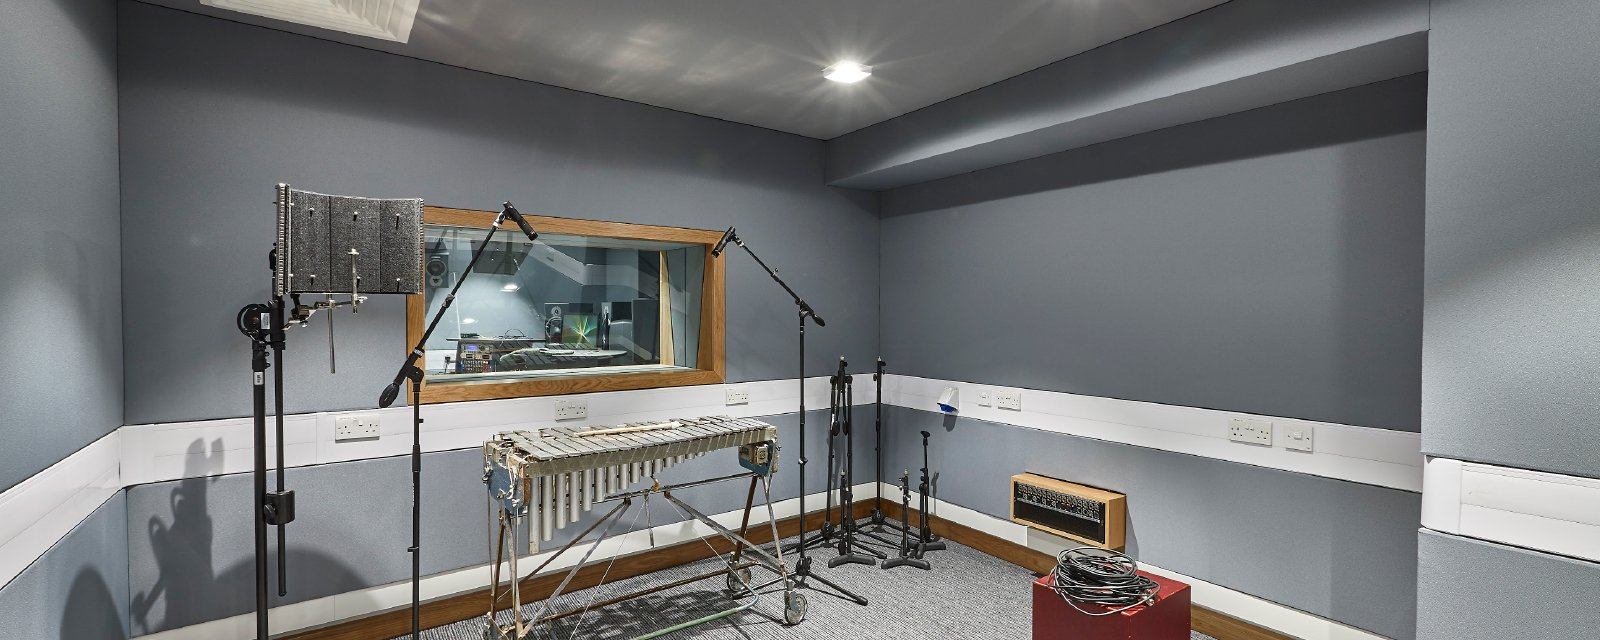 Our acoustic solutions optimise professional spaces!